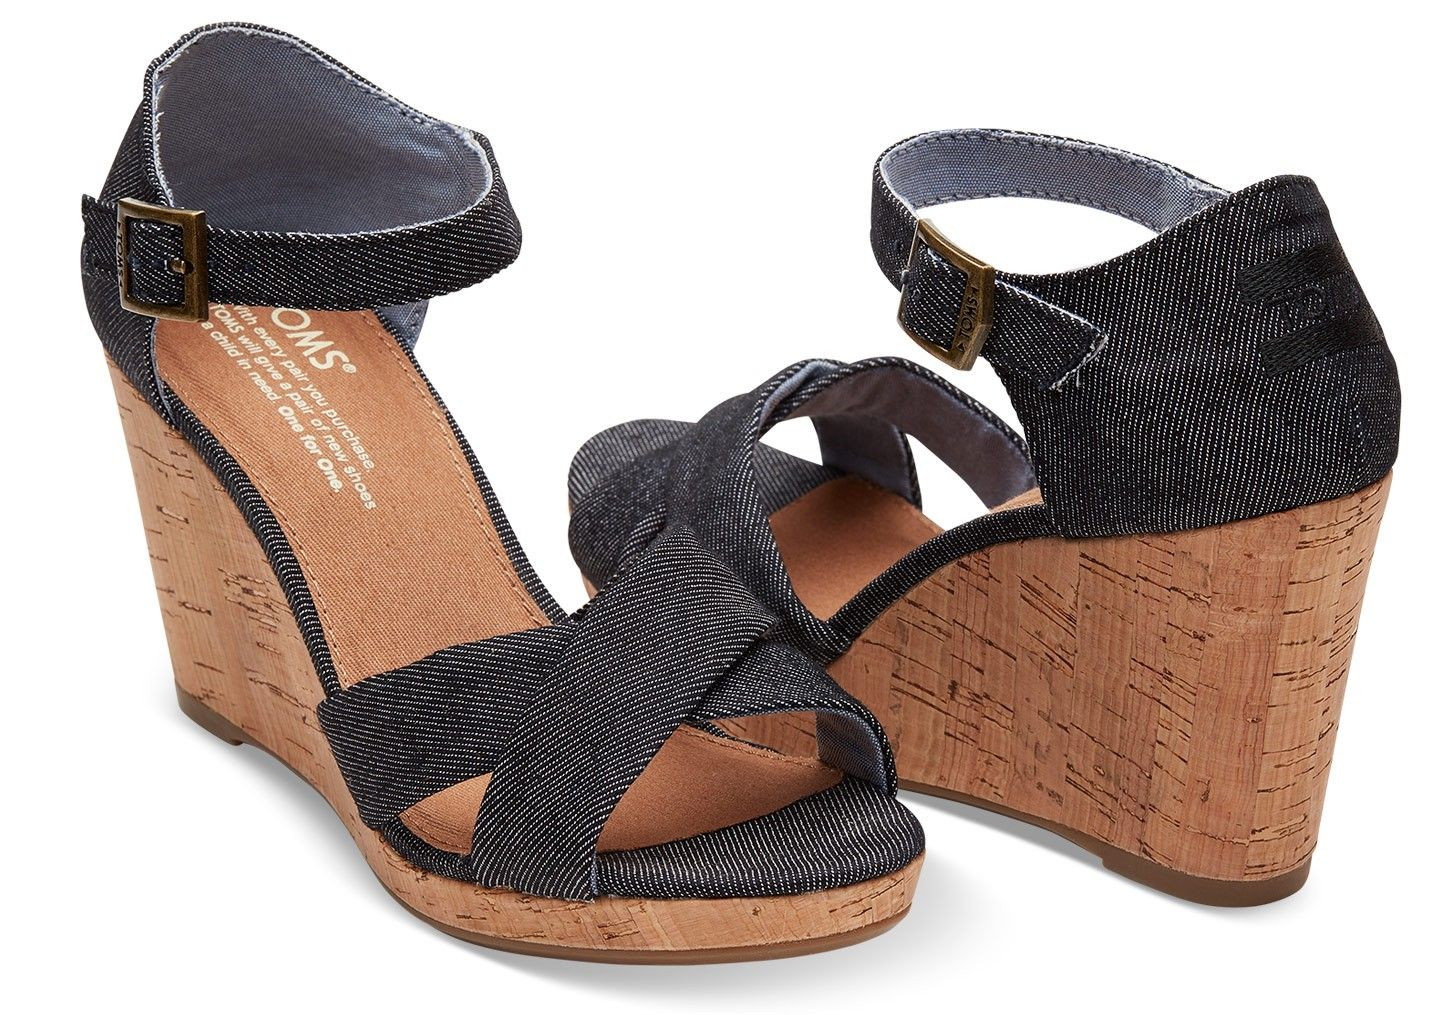 ba8b8333aa7 Toms Black Denim Women s Sienna Wedges - 12